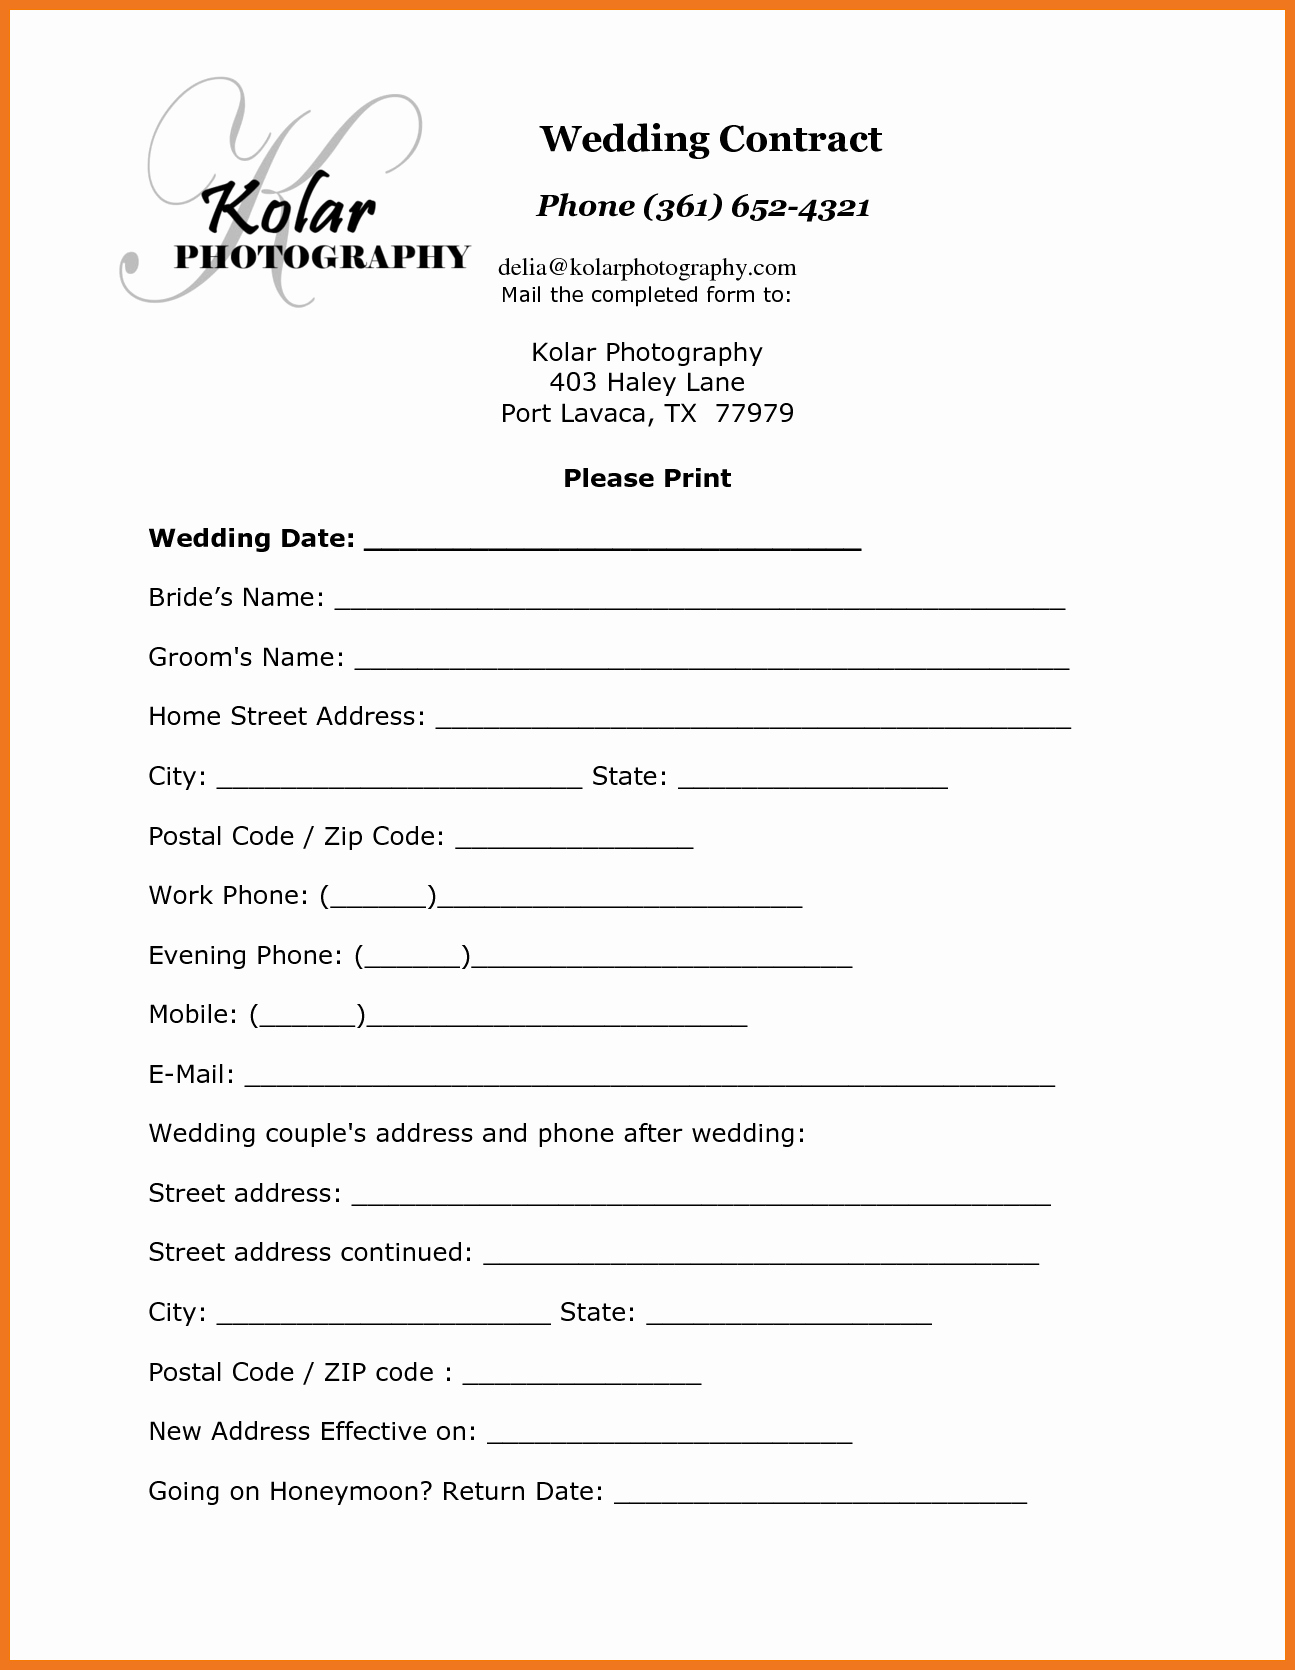 1 2 Wedding Contract Template